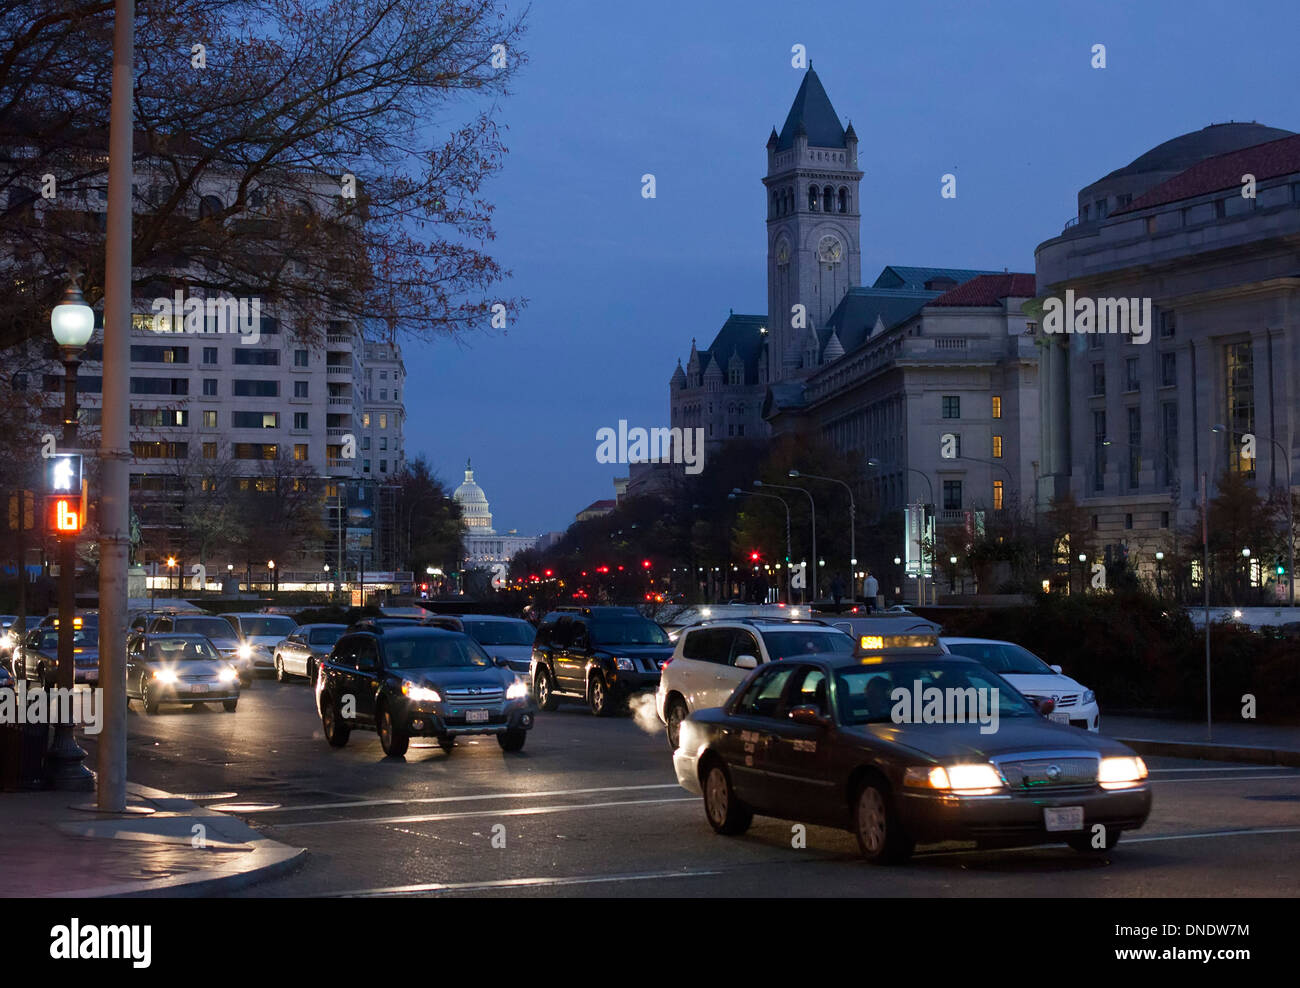 Washington, DC - Pennsylvania Avenue during the evening rush hour with the U.S. capitol in the background. - Stock Image